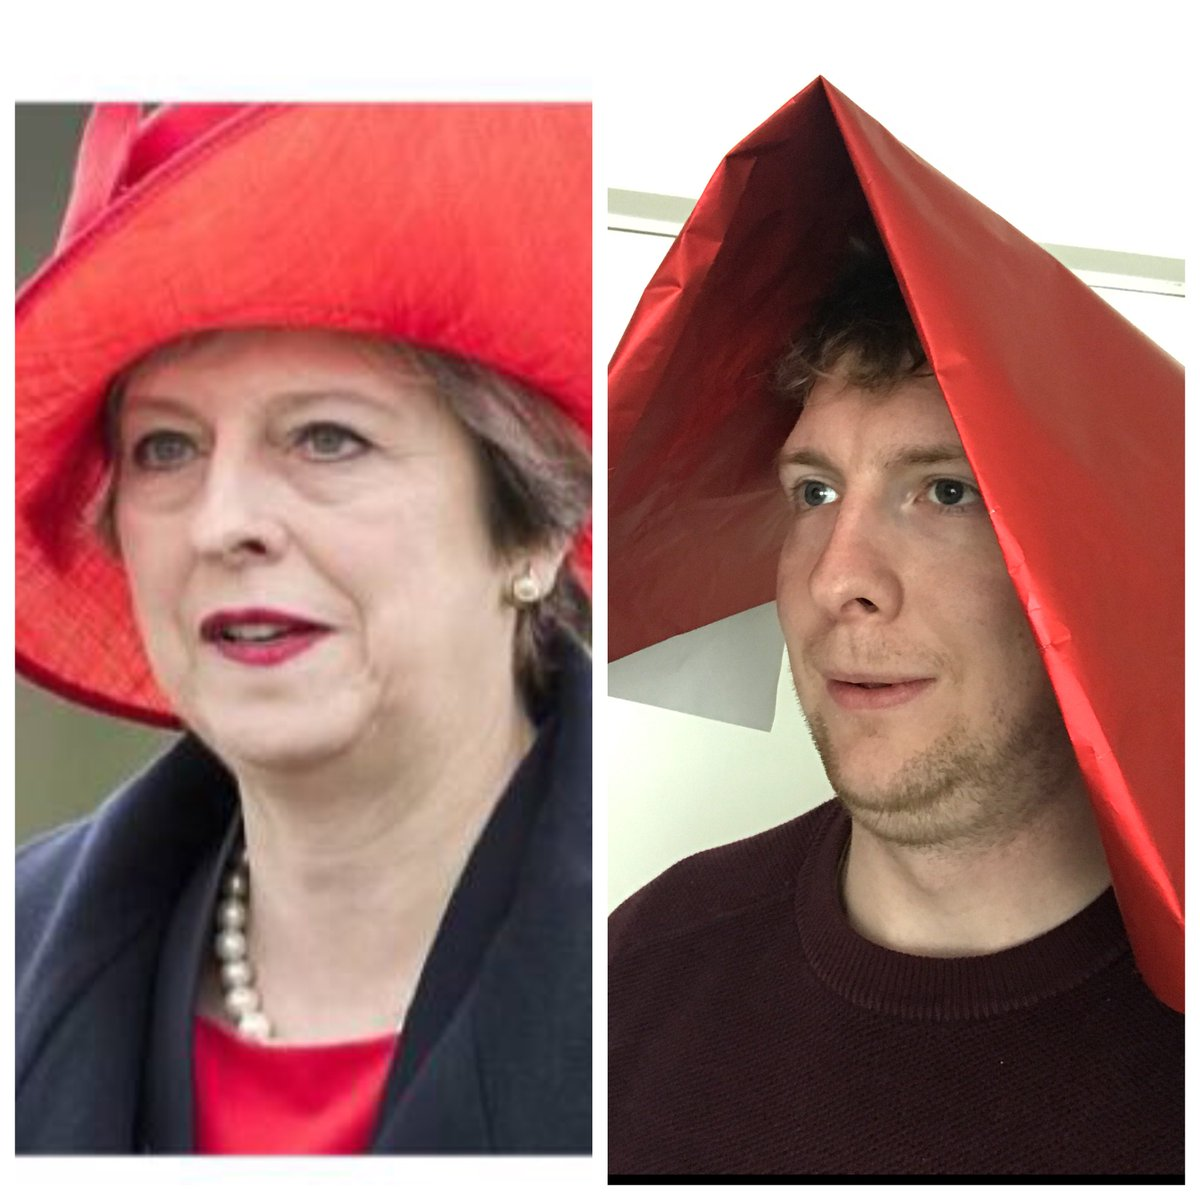 Here are just a few of my @theresa_may 'who wore it best' pics. Catch them all on my instagram.